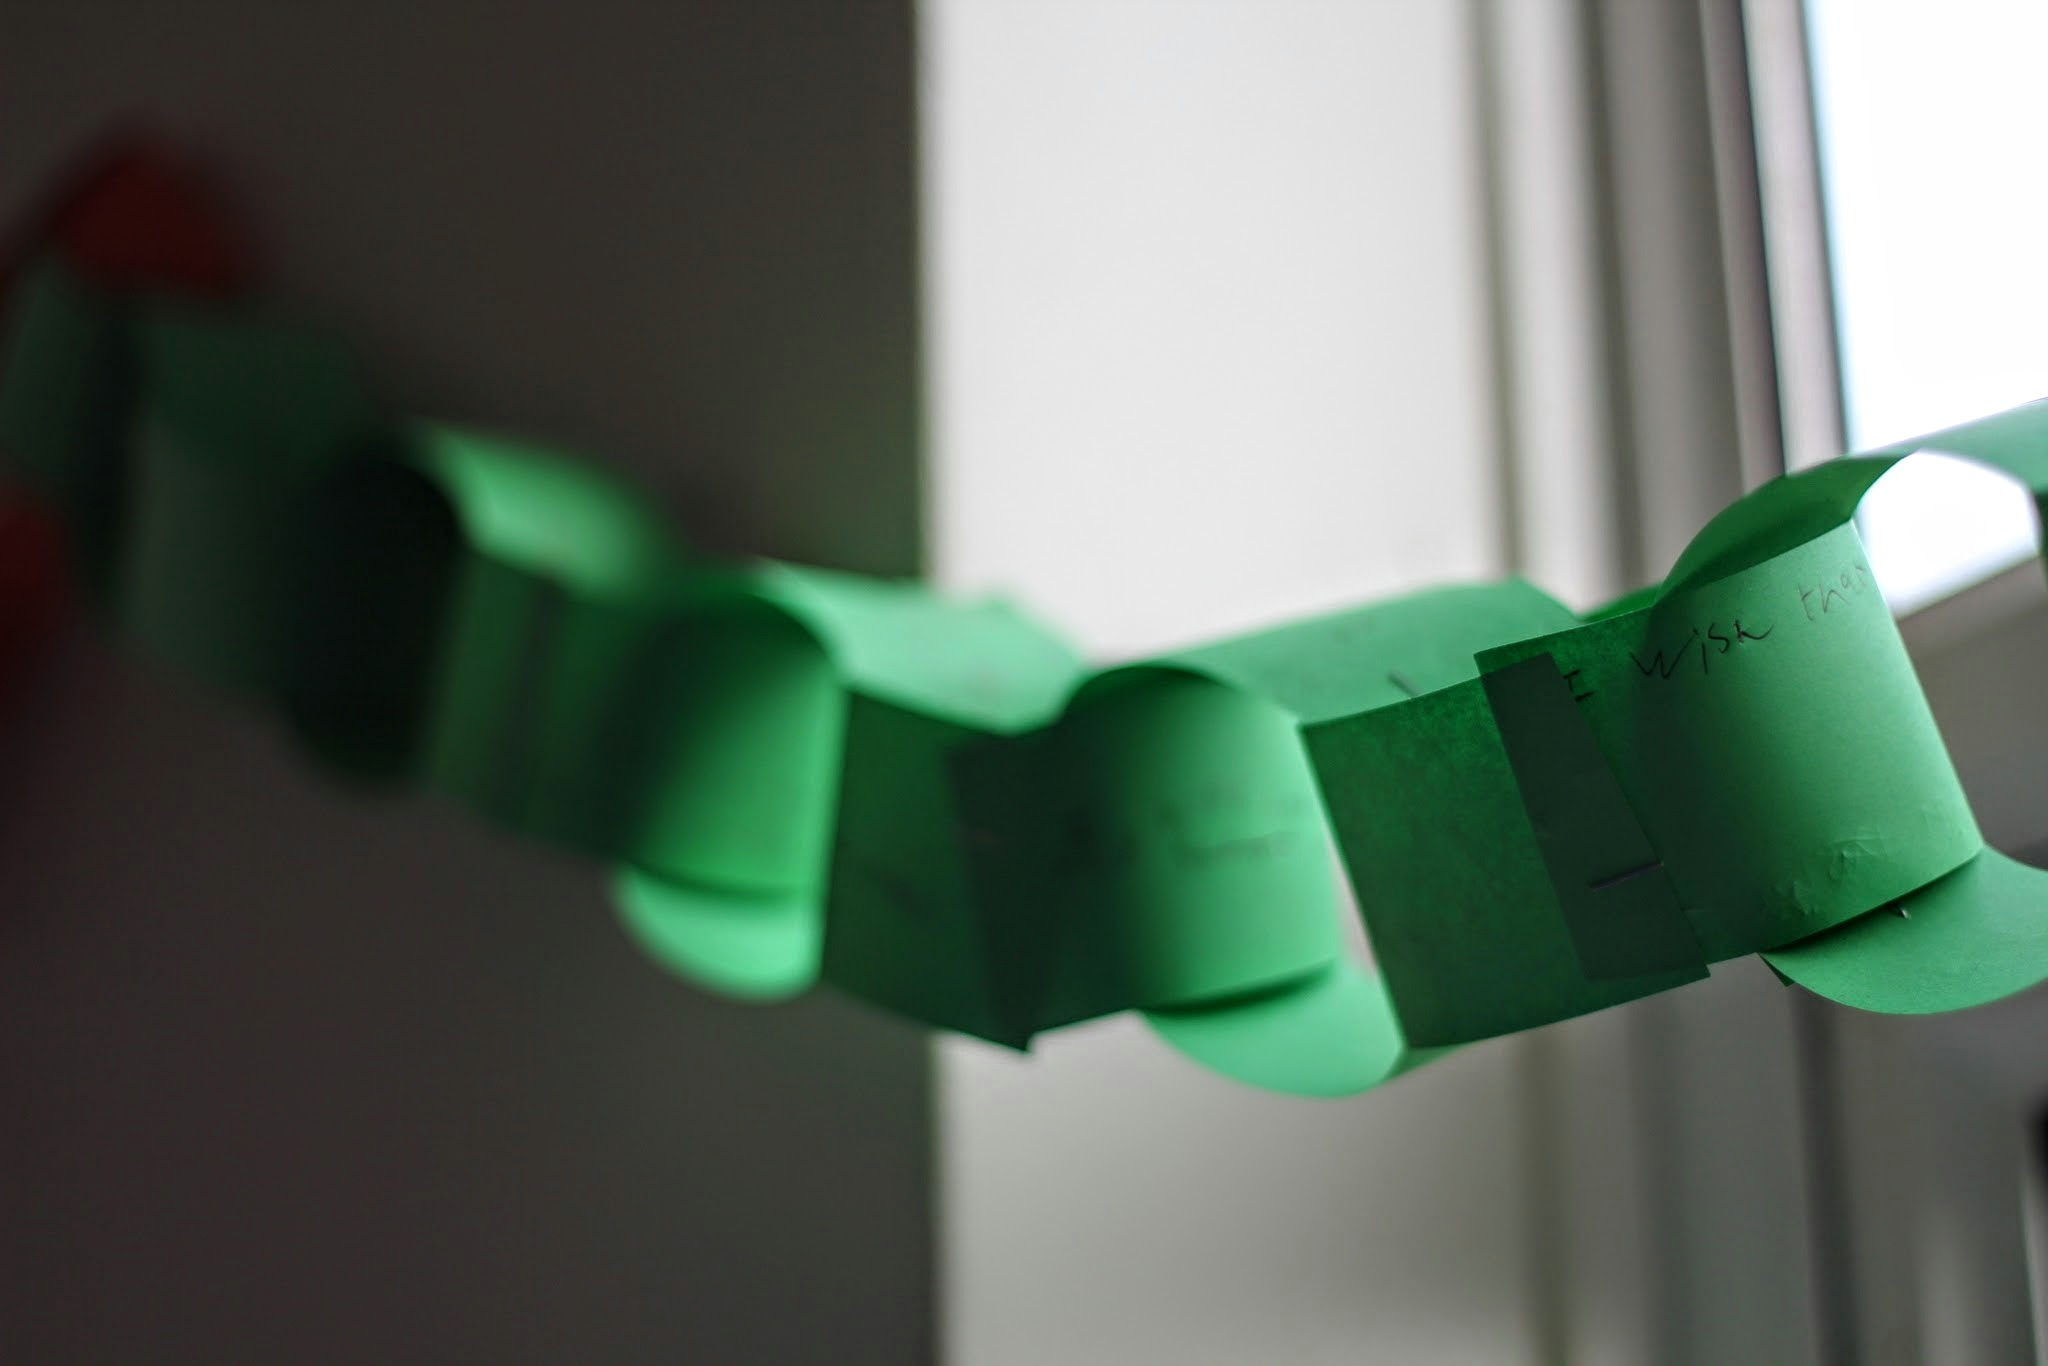 Paper-chains representing our hopes & dreams